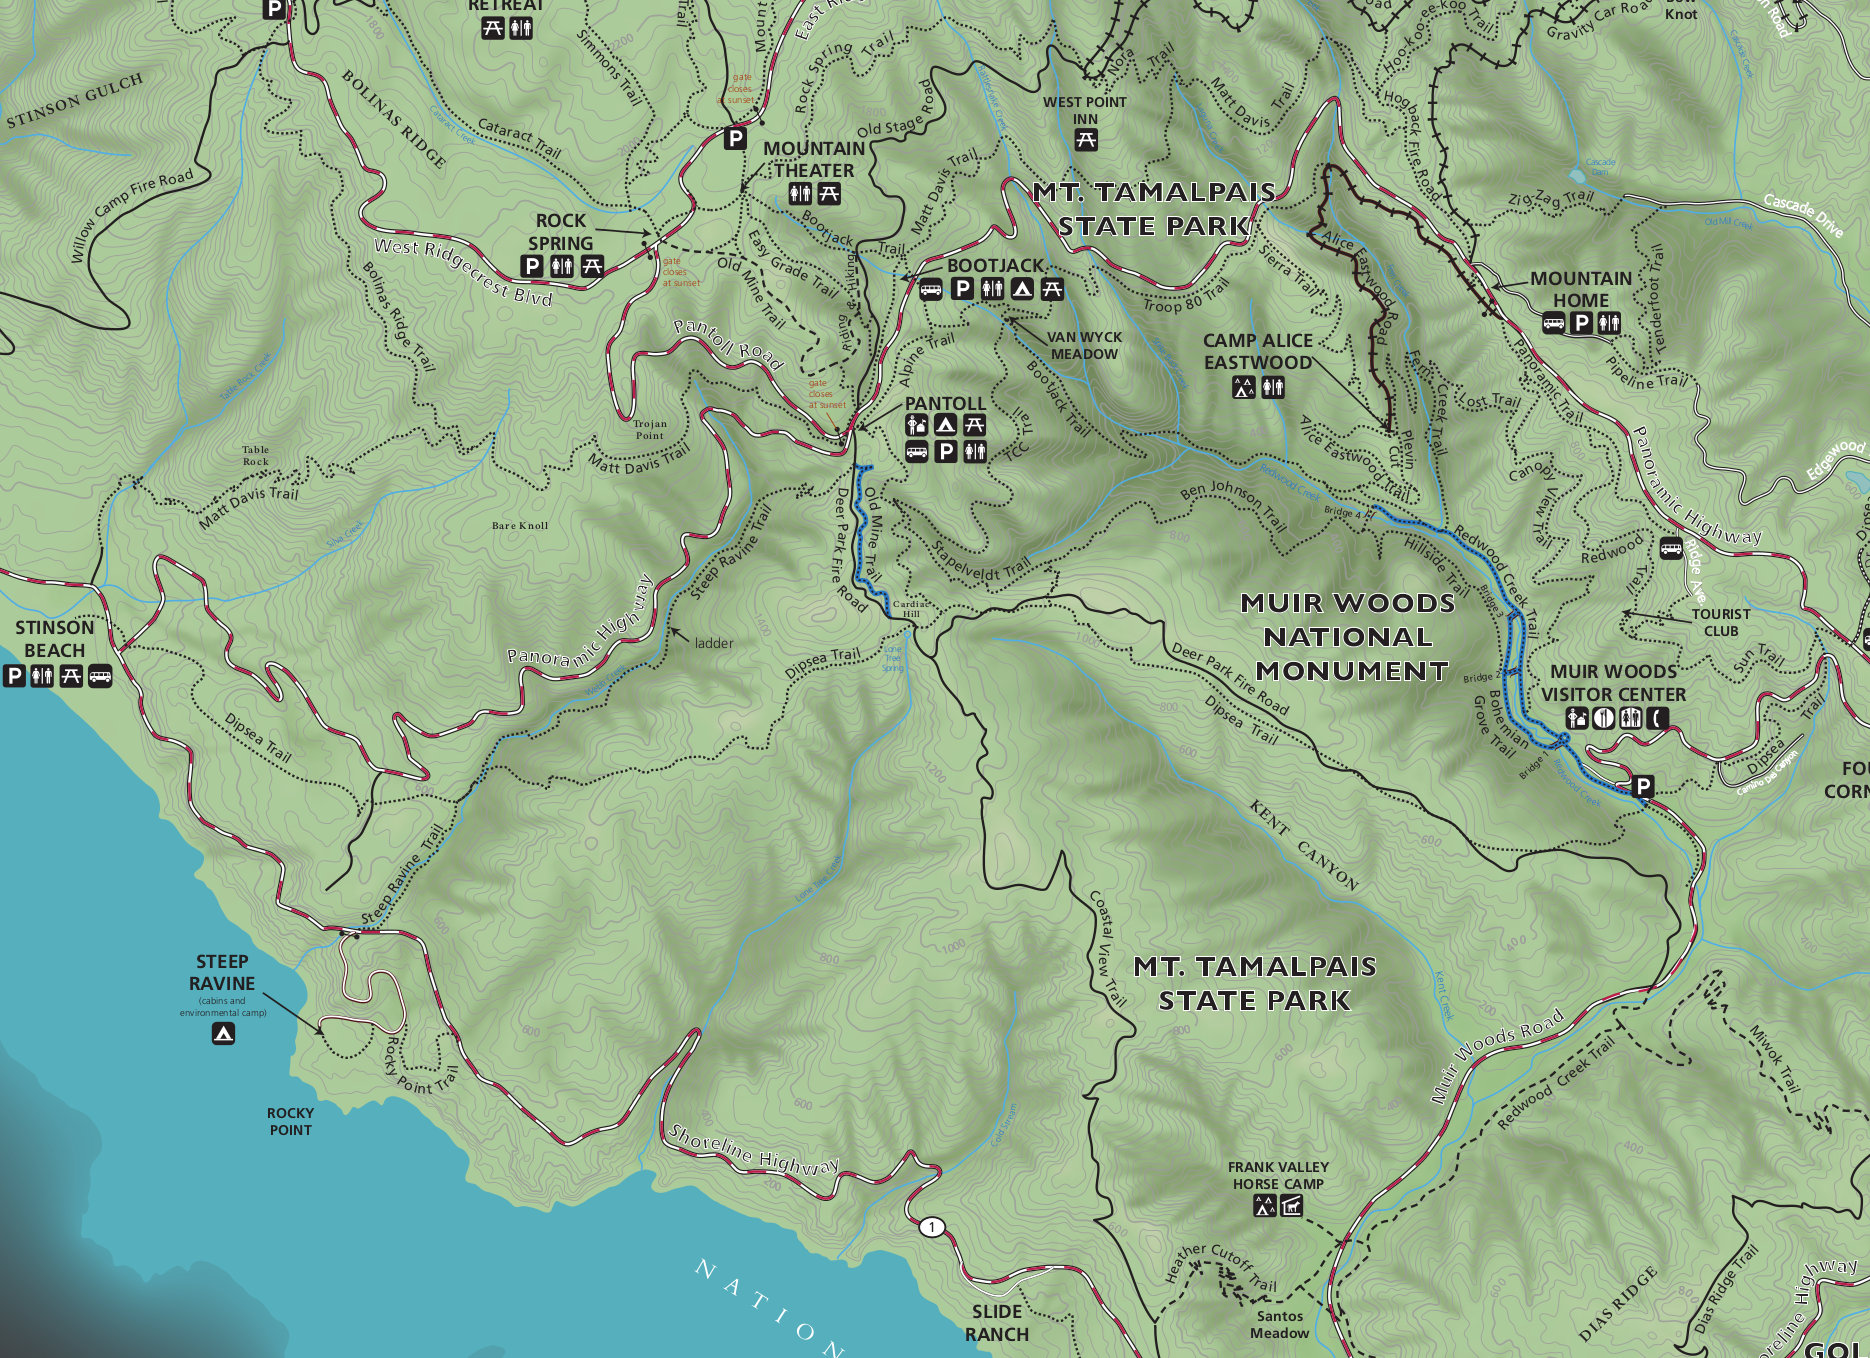 Muir Woods Maps | NPMaps.com - just free maps, period. on golden gate bridge map, green valley map, walnut creek map, marin city map, redwood national park map, willow creek map, san bruno mountain state park map, alibates flint quarries map, san pablo map, montrose map, big sur map, mt. tamalpais cataract trail map, marin county map, cisco grove map, san francisco map, miller woods map, alpine meadows map, sausalito map, carmel by the sea map, lincoln woods map,